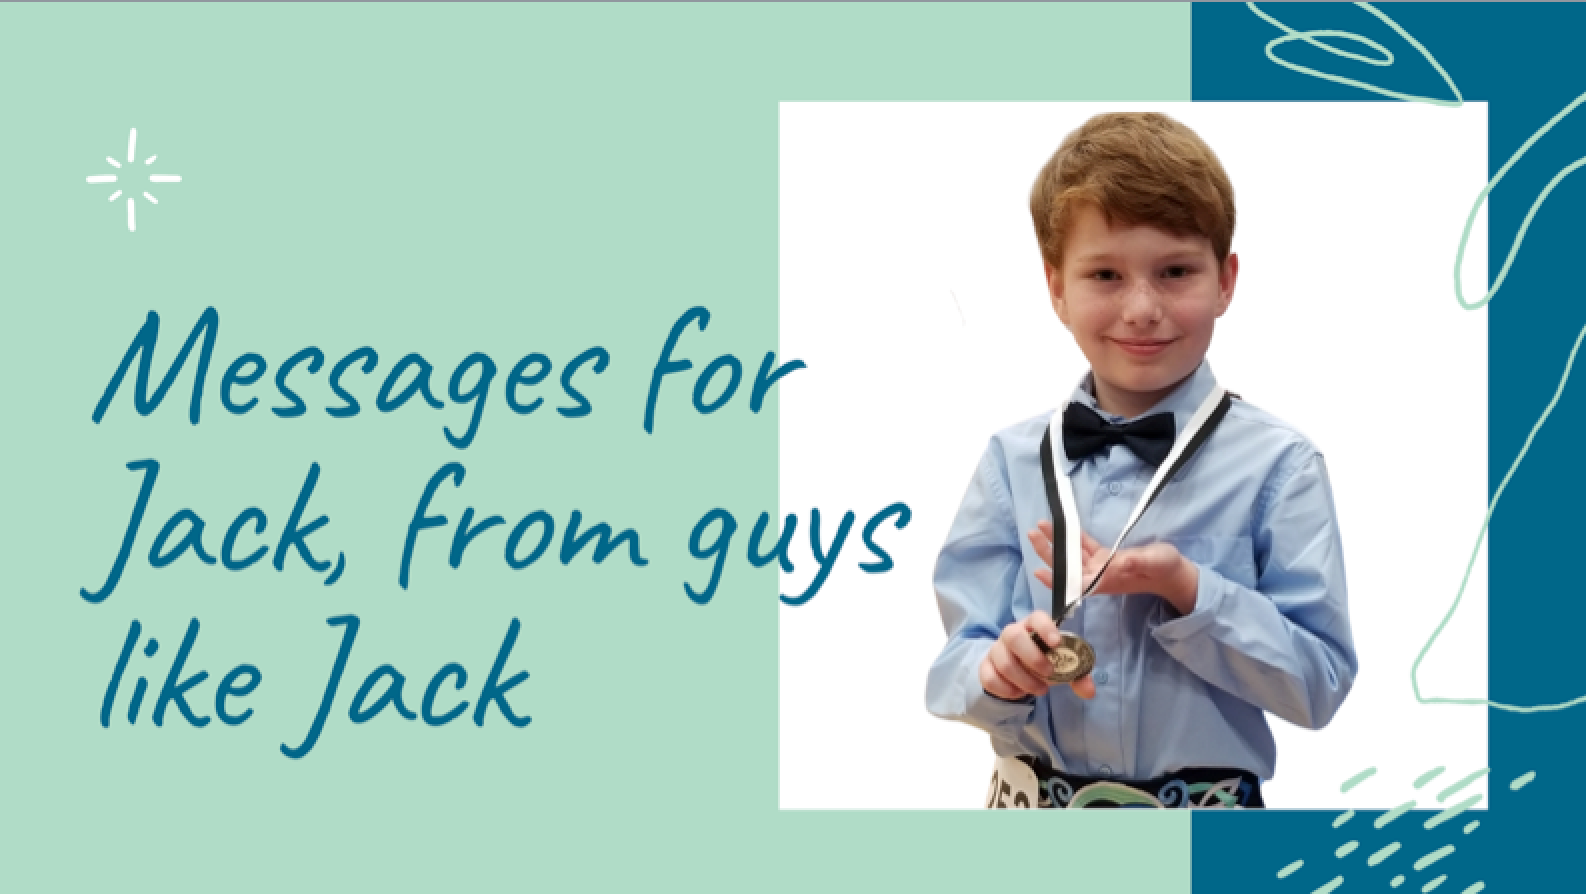 Messages for Jack, From Guys Like Jack